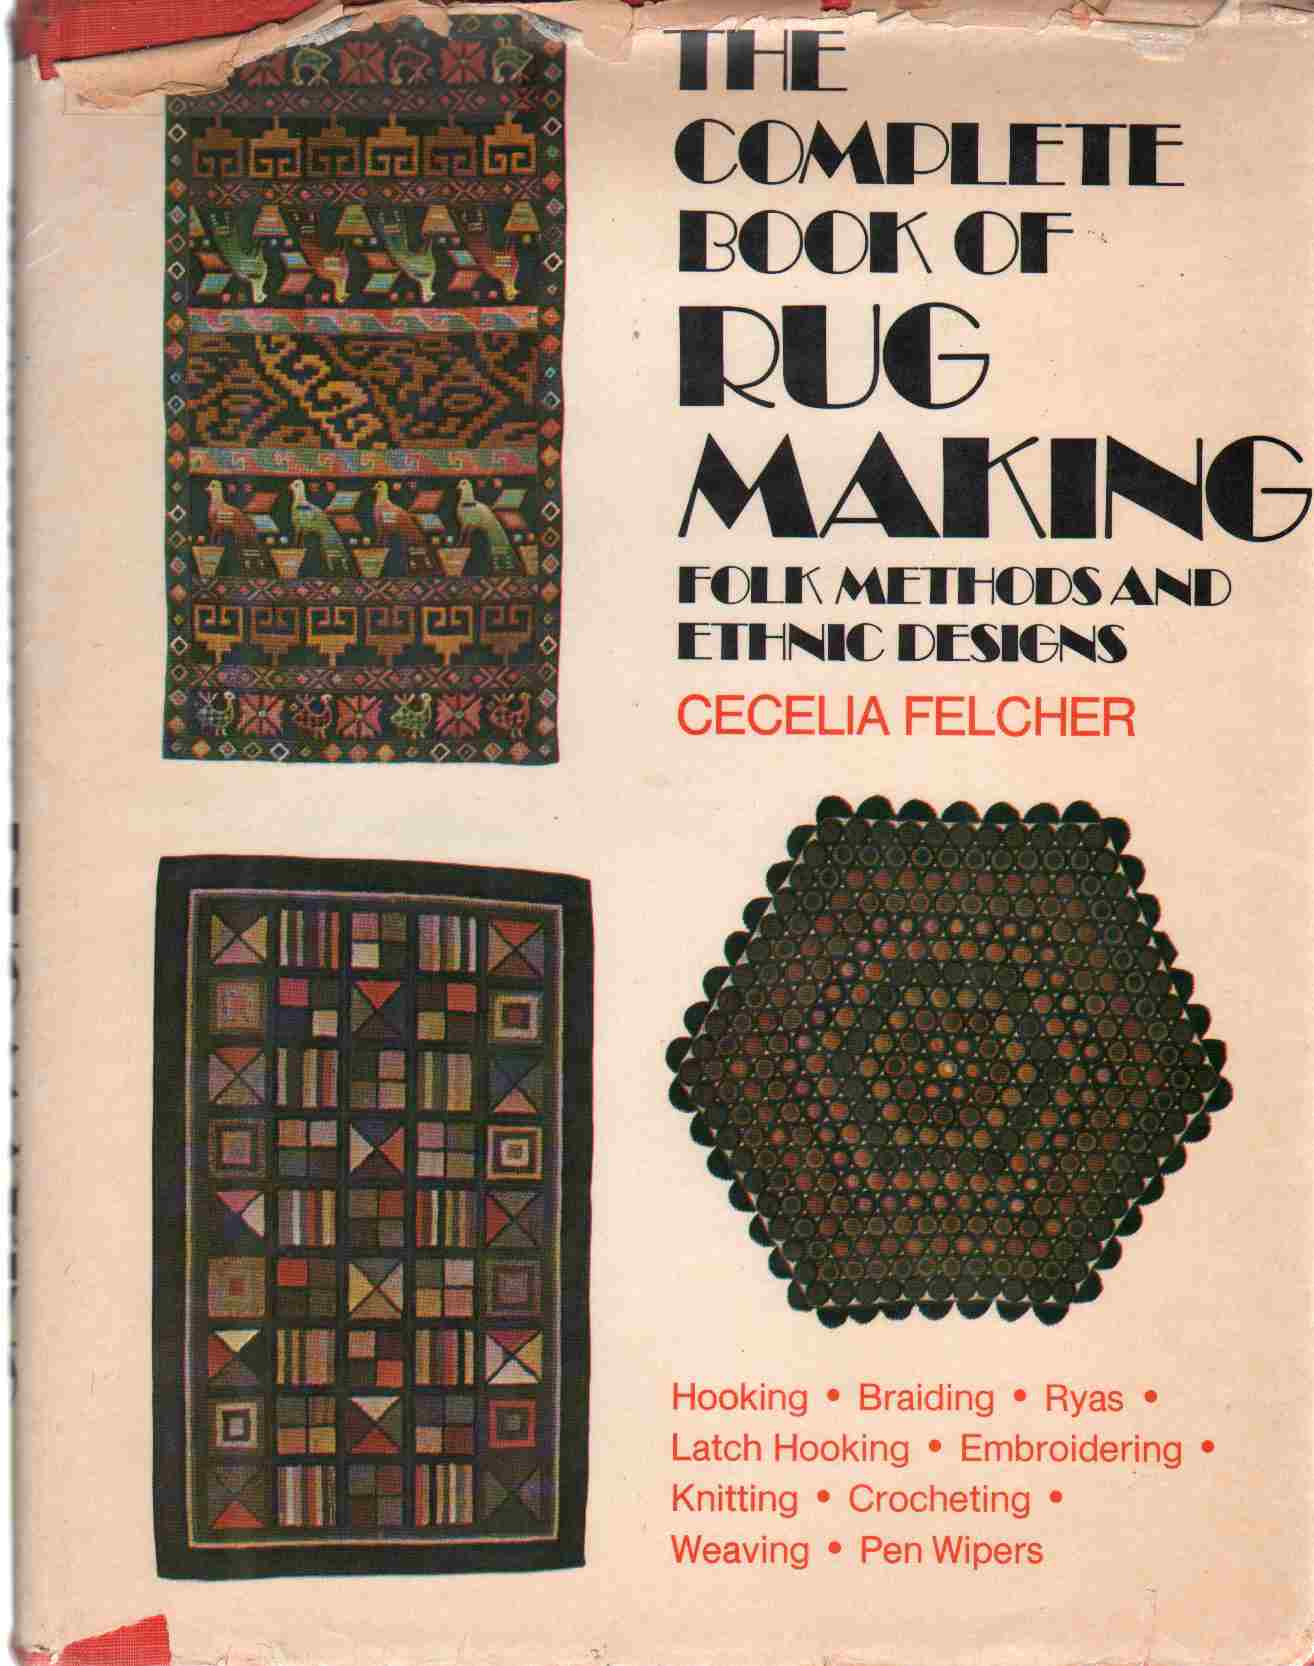 Image for THE COMPLETE BOOK OF RUG MAKING Folk Methods and Ethnic Designs